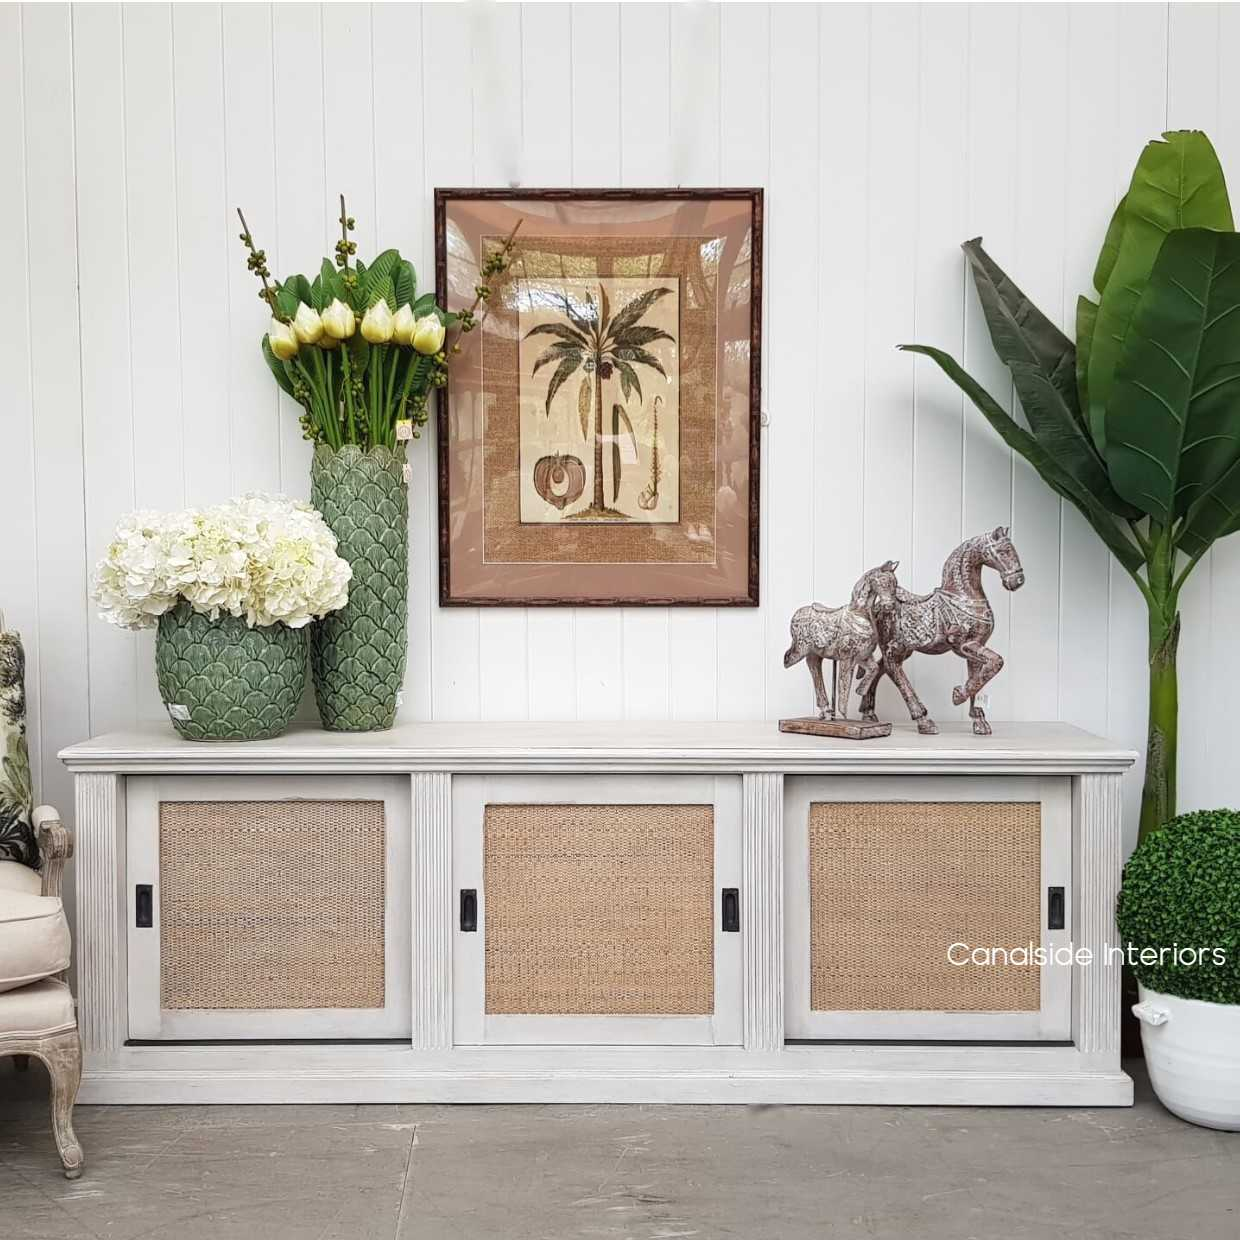 Brielle Rattan Entertainment Unit II for April HAMPTONS Style, PLANTATION Style, LIVING Room, LIVING TV Media & Storage, TABLES Sideboards & Buffets, STORAGE, STORAGE Sideboards & Buffets, PLANTATION STYLE